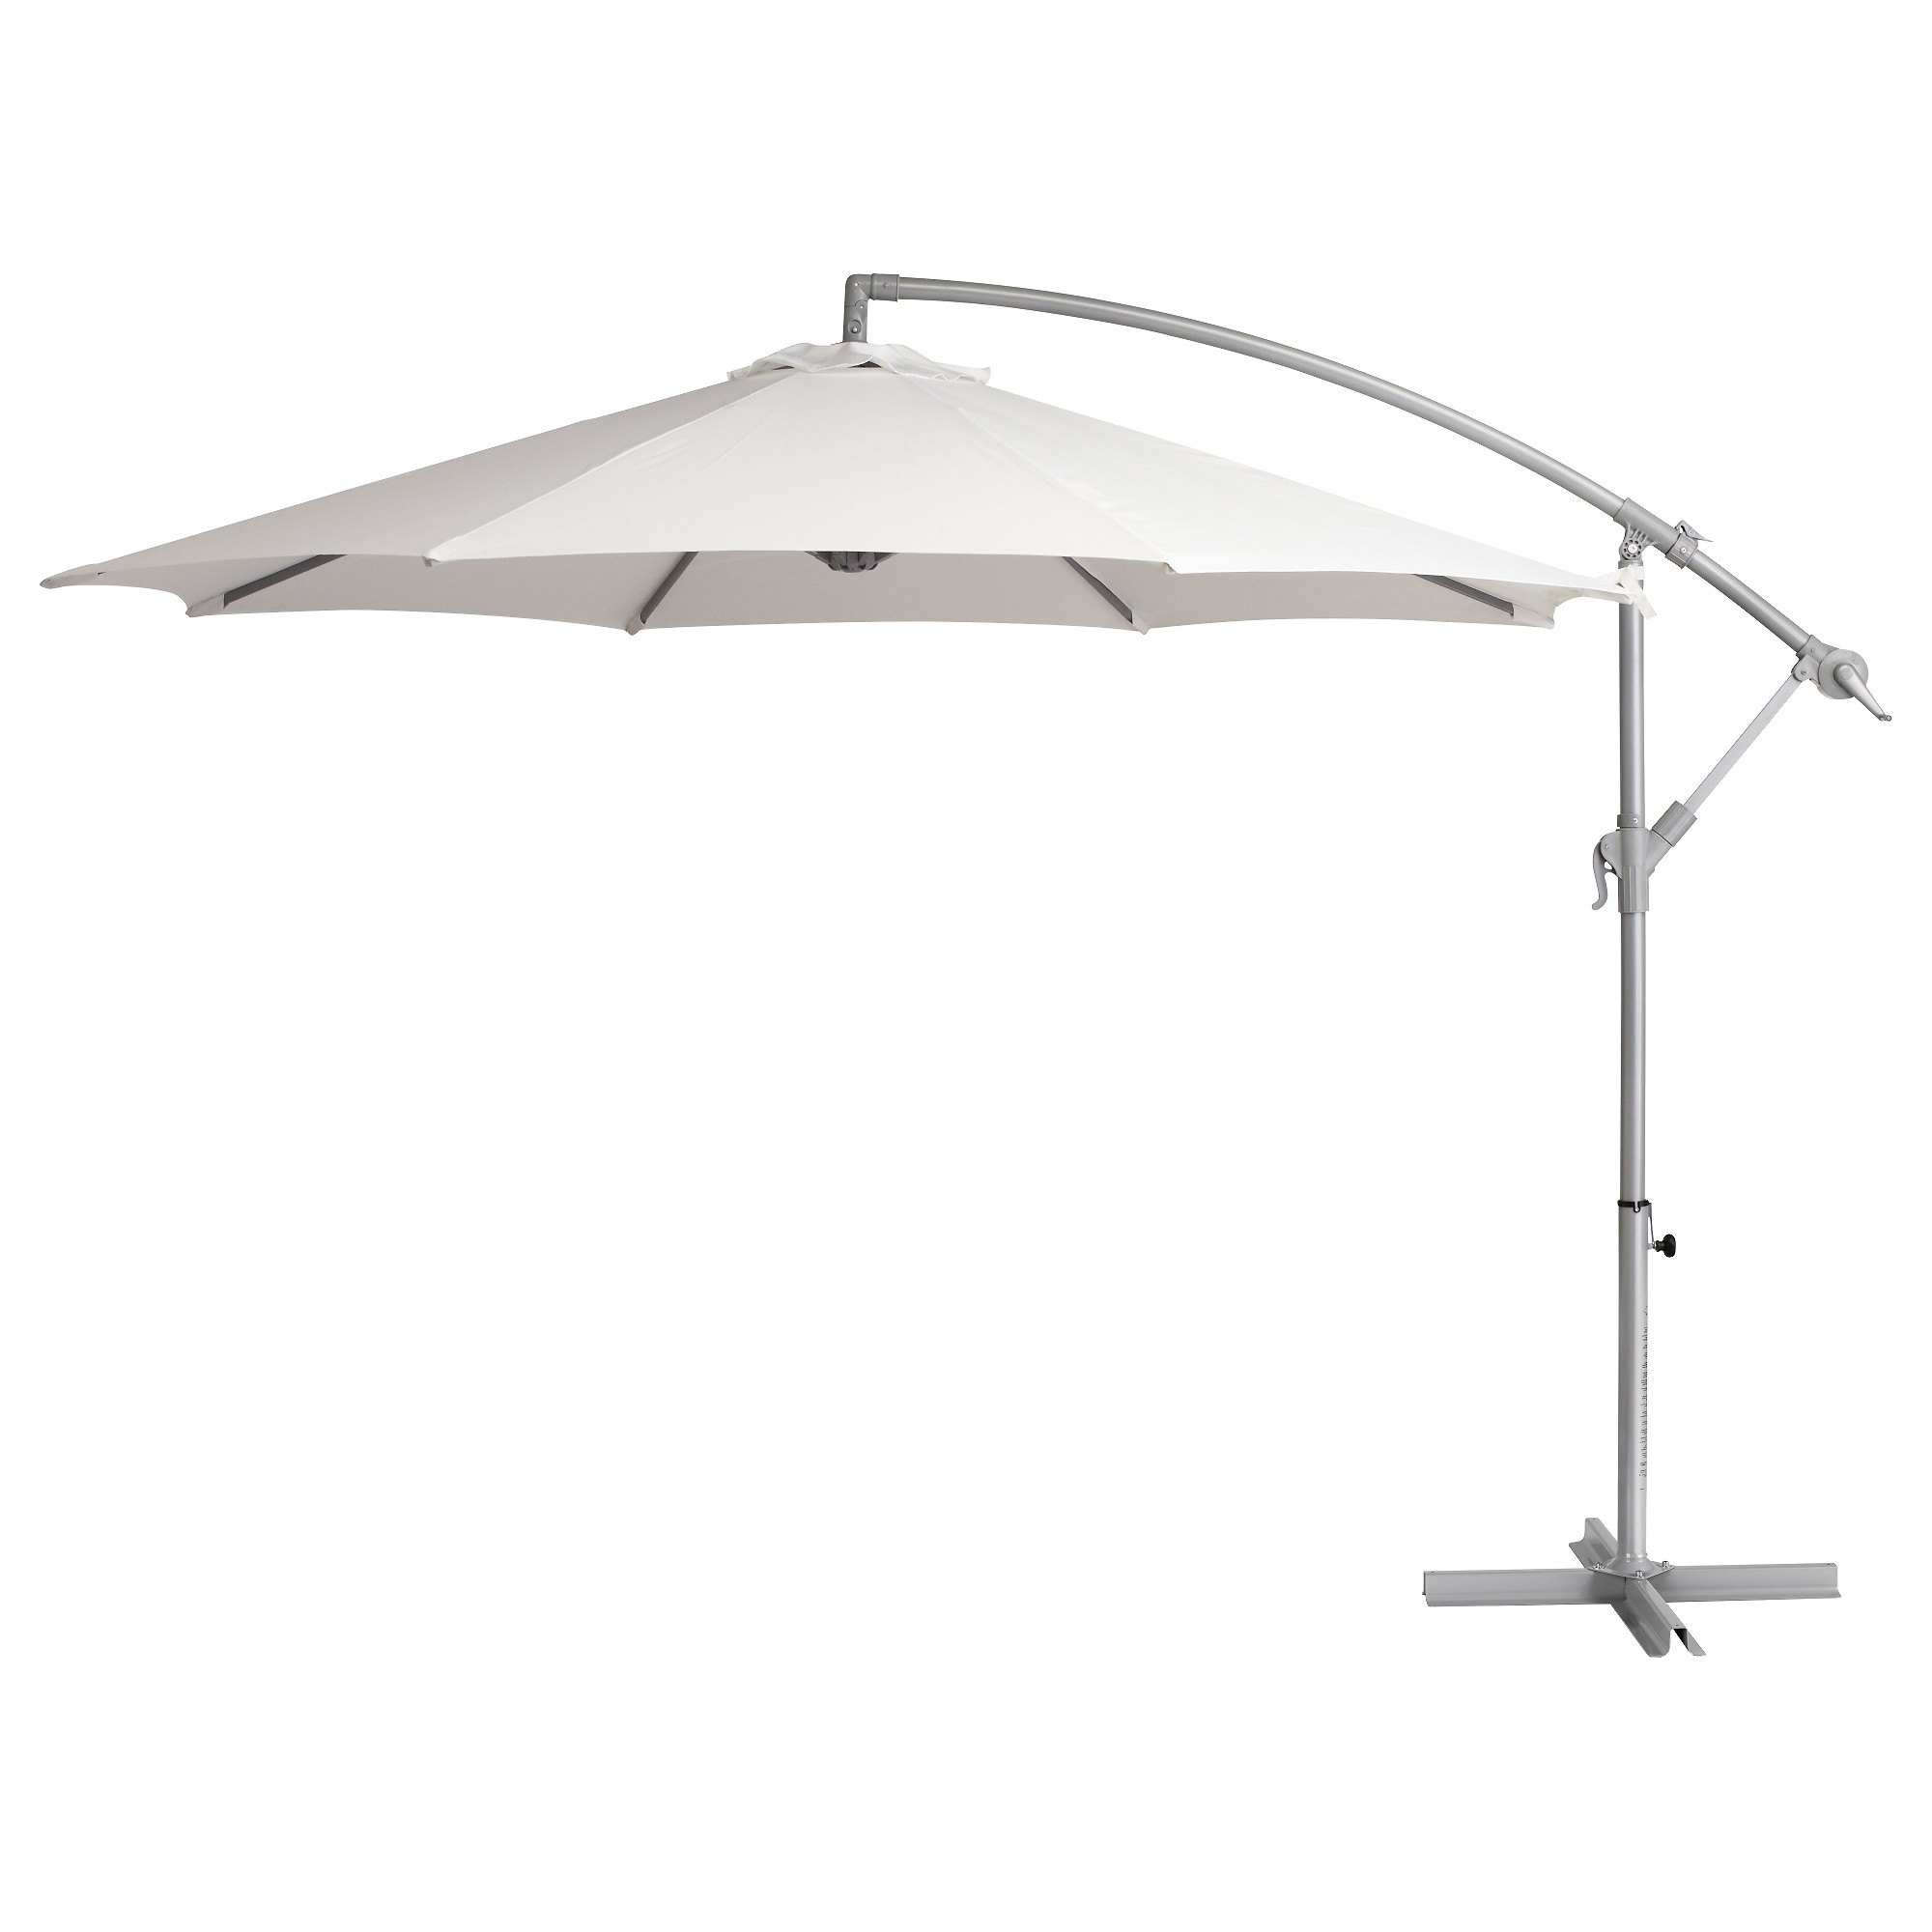 popular ikea patio umbrellas throughout ikea patio umbrella svart umbrella base ikea view jpg 2000x2000 ikea - Ikea Patio Umbrella